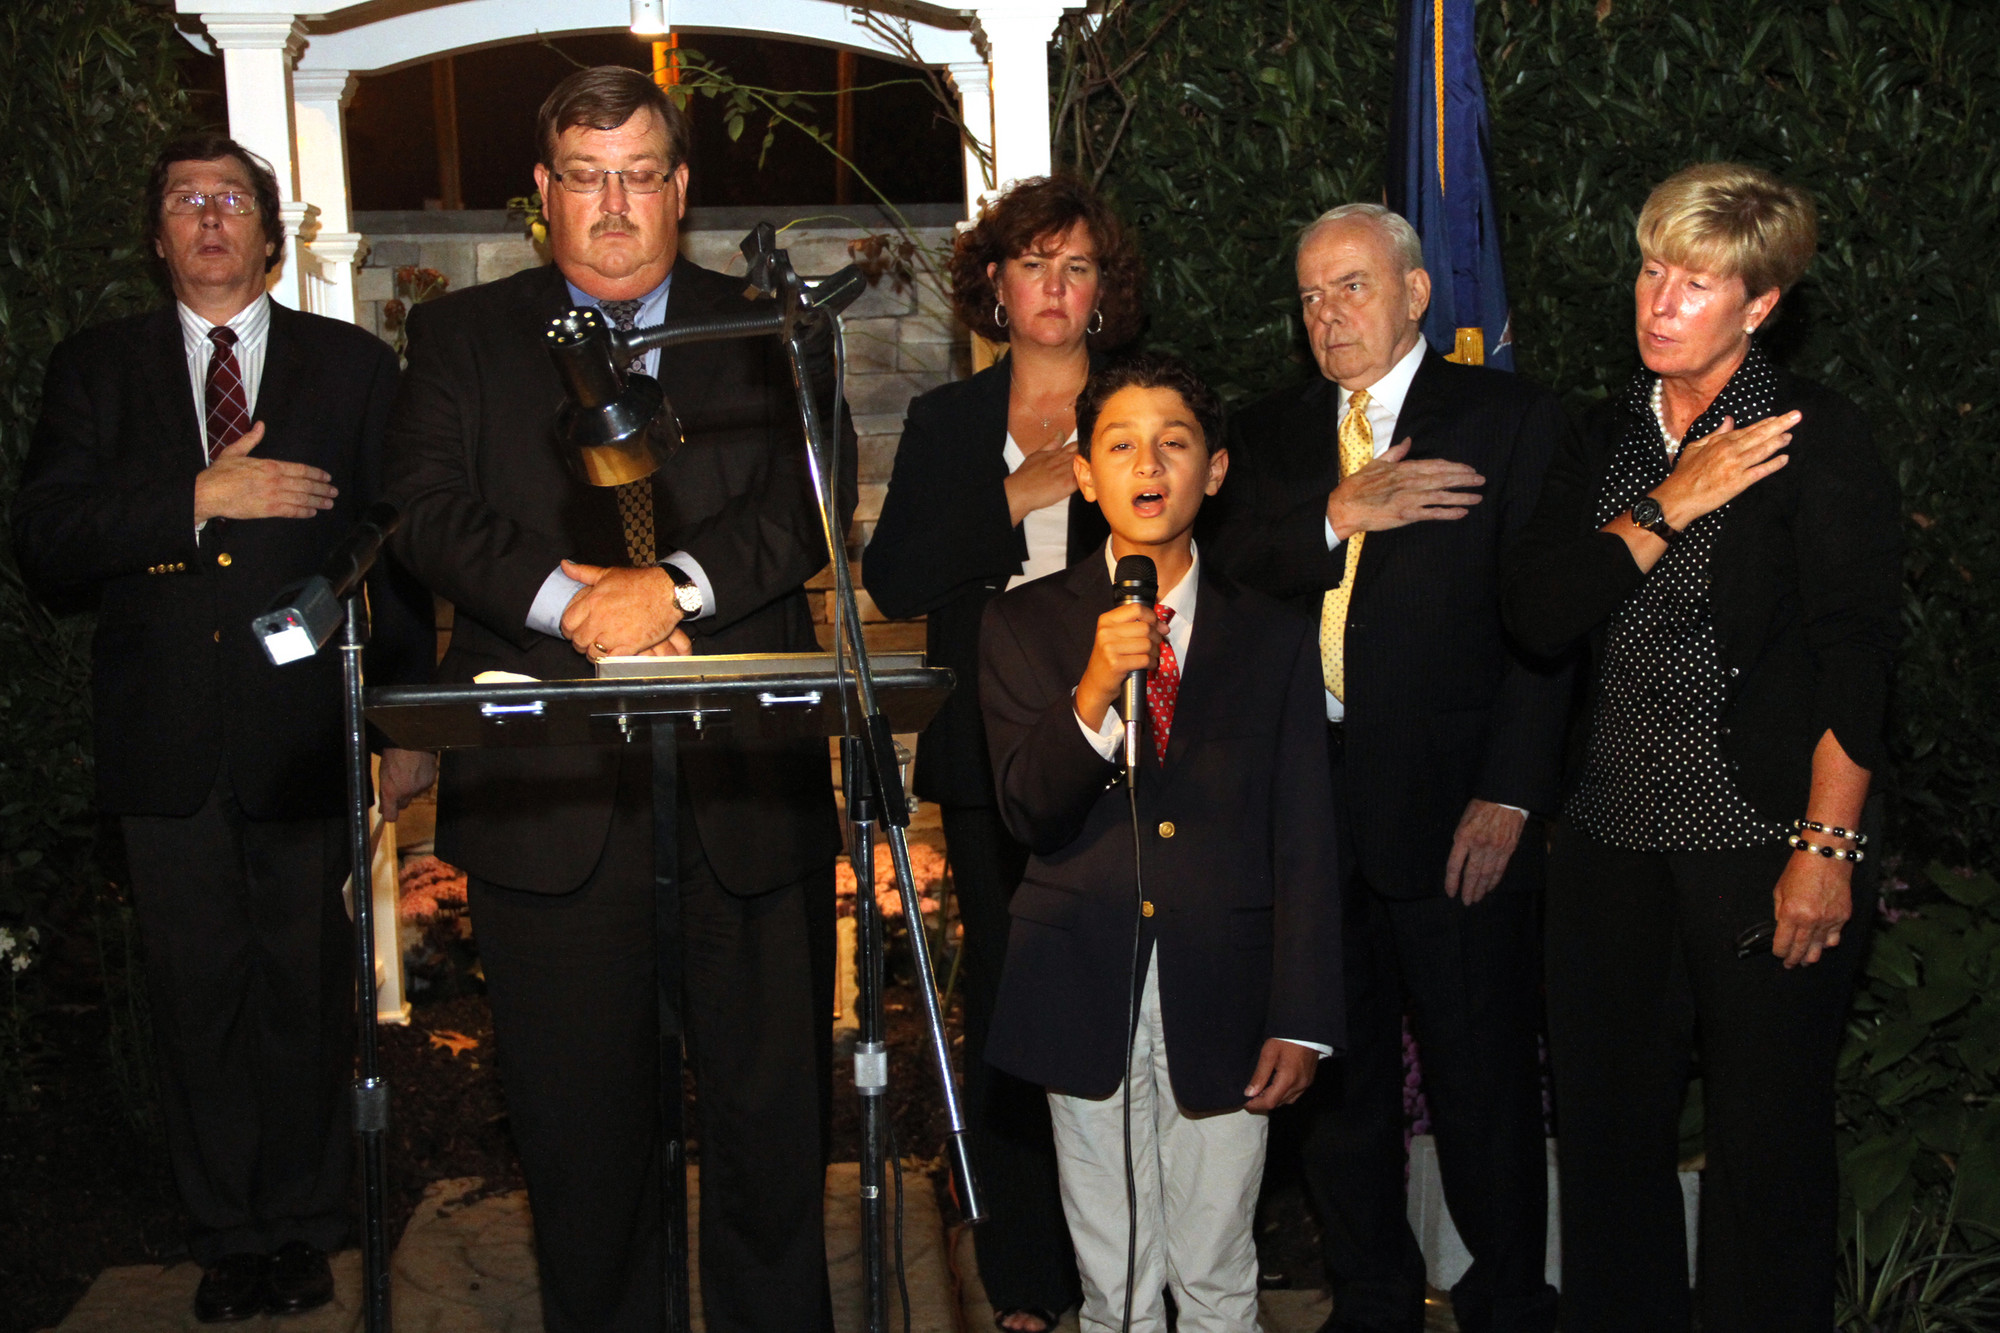 Malverne resident Benjamin Truncale sang the national anthem at this year's ceremony.